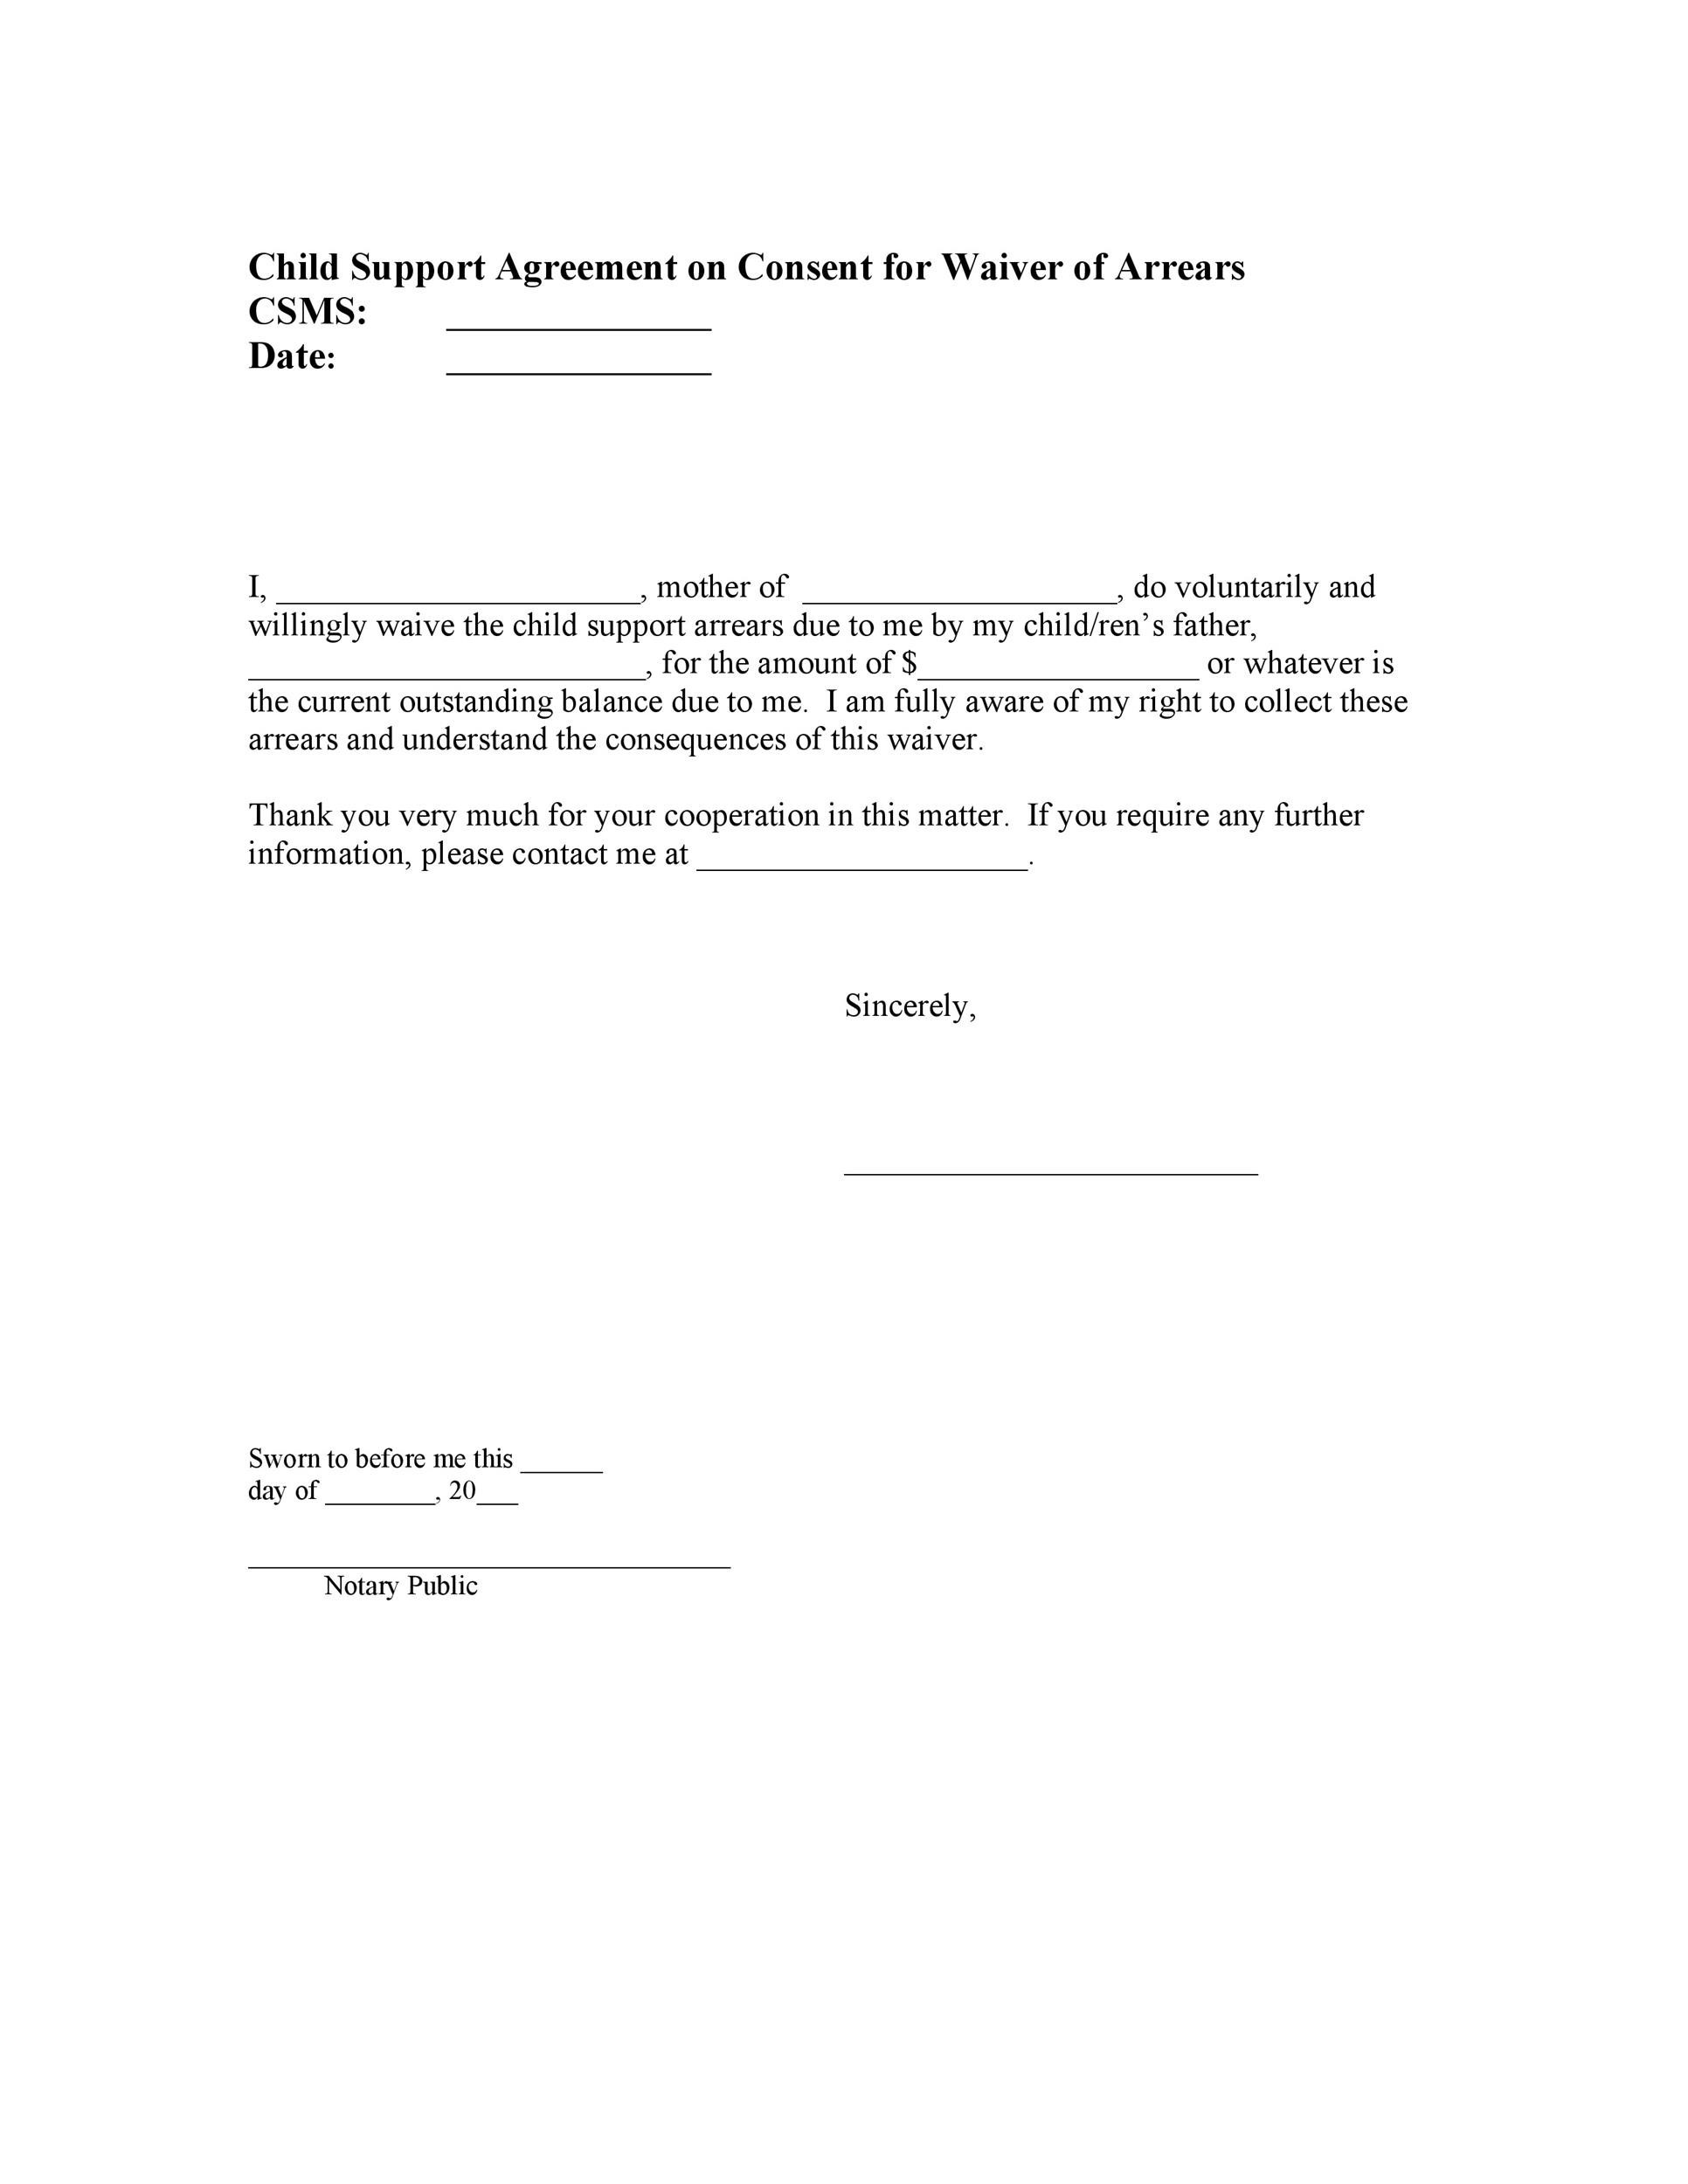 Child Support Agreement Letter Templates Hoyuk